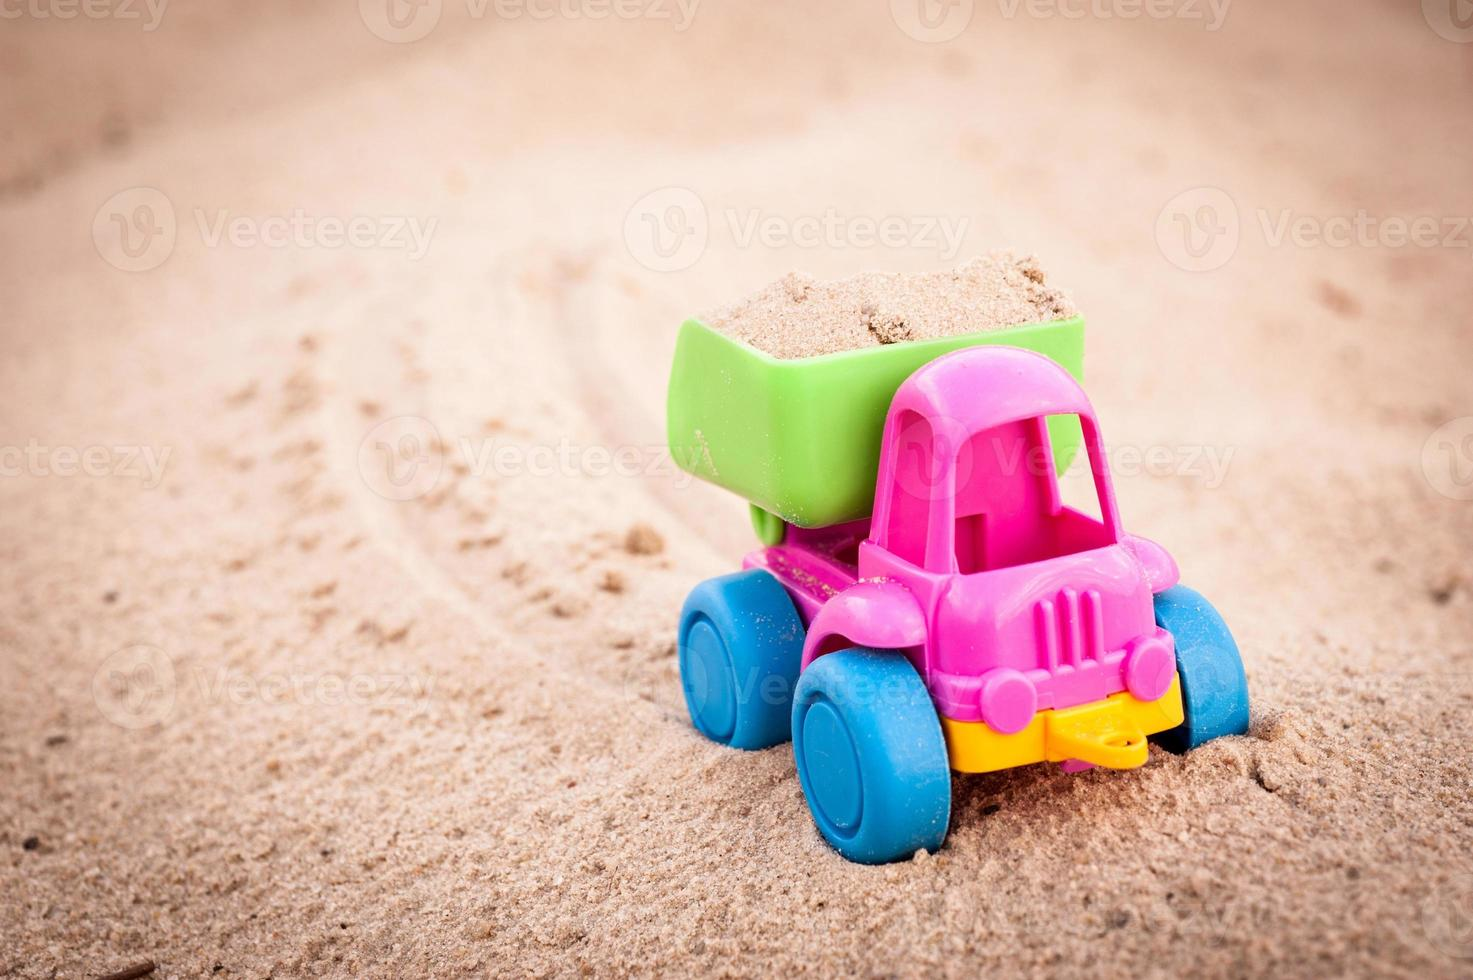 Truck going forward in the sands photo